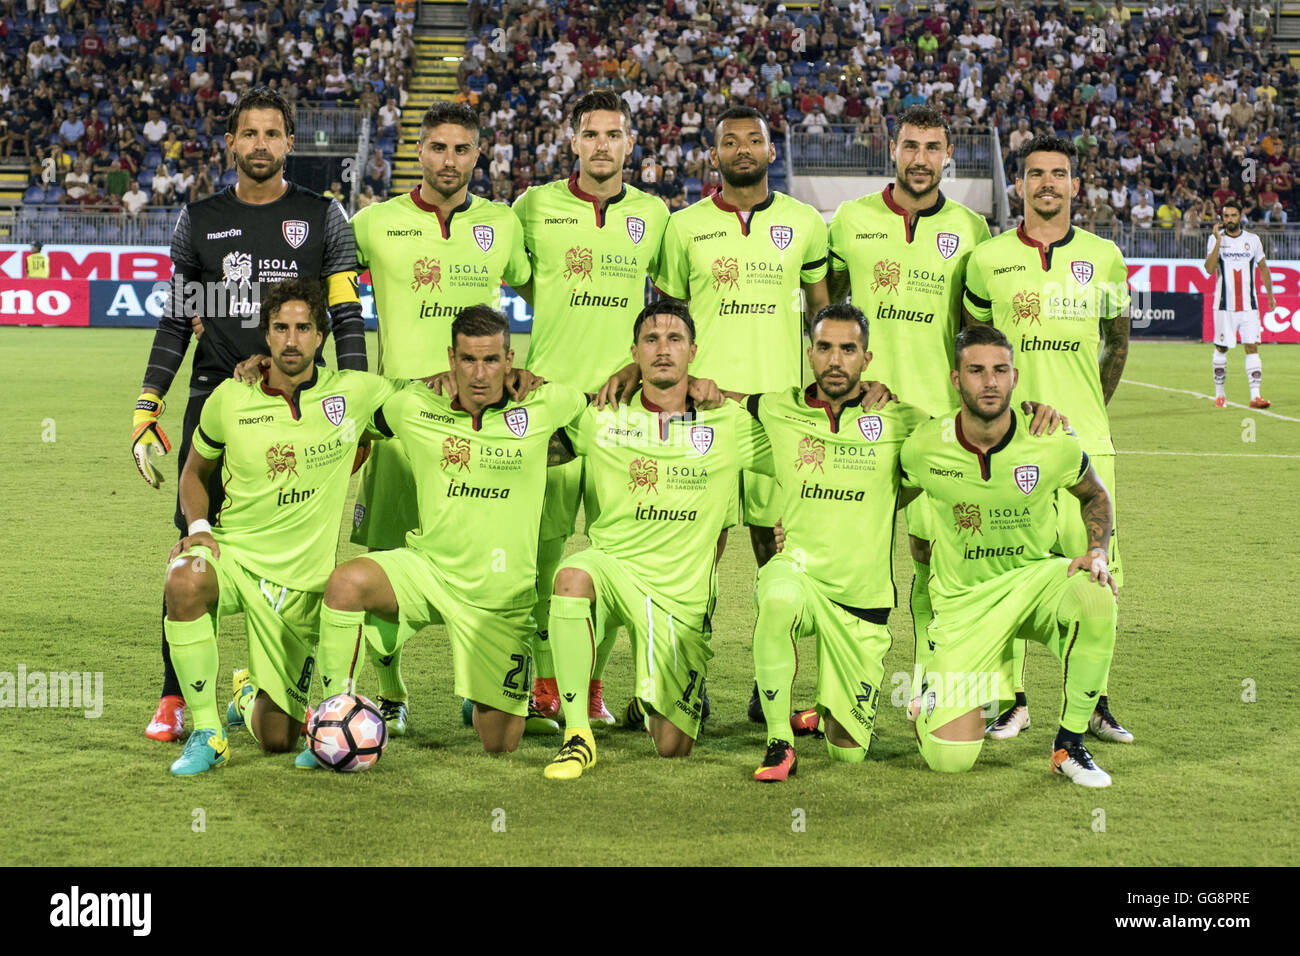 Cagliari, Italy. 31st July, 2016. Cagliari team group line-up Football/Soccer : Cagliari team group shot (Top row Stock Photo